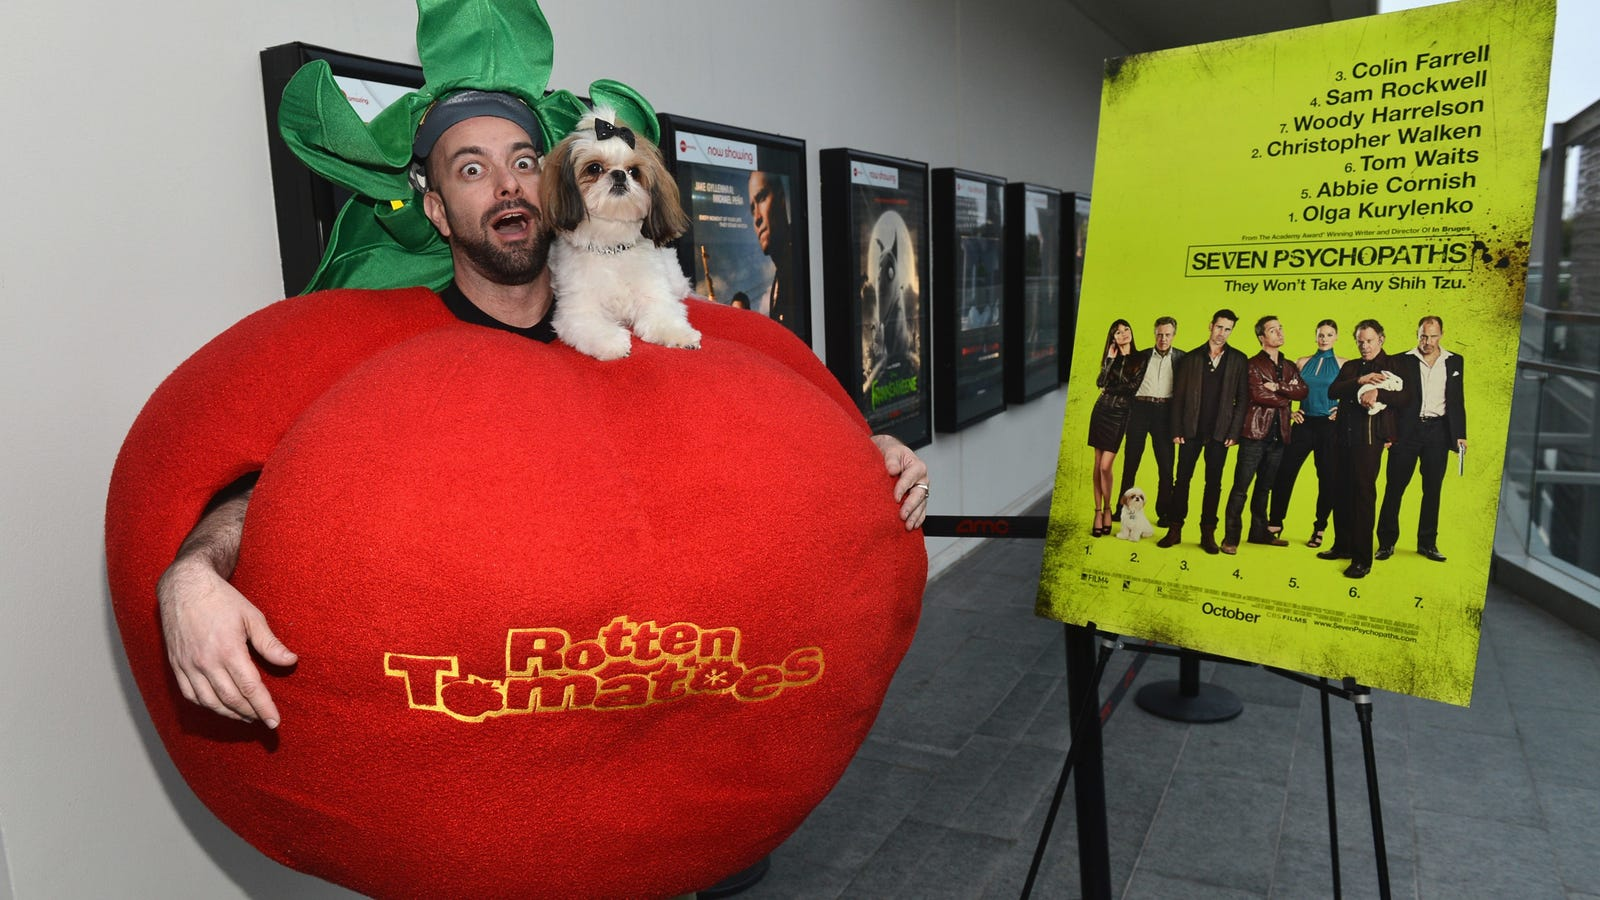 Why are Rotten Tomatoes scores getting steadily higher every year?